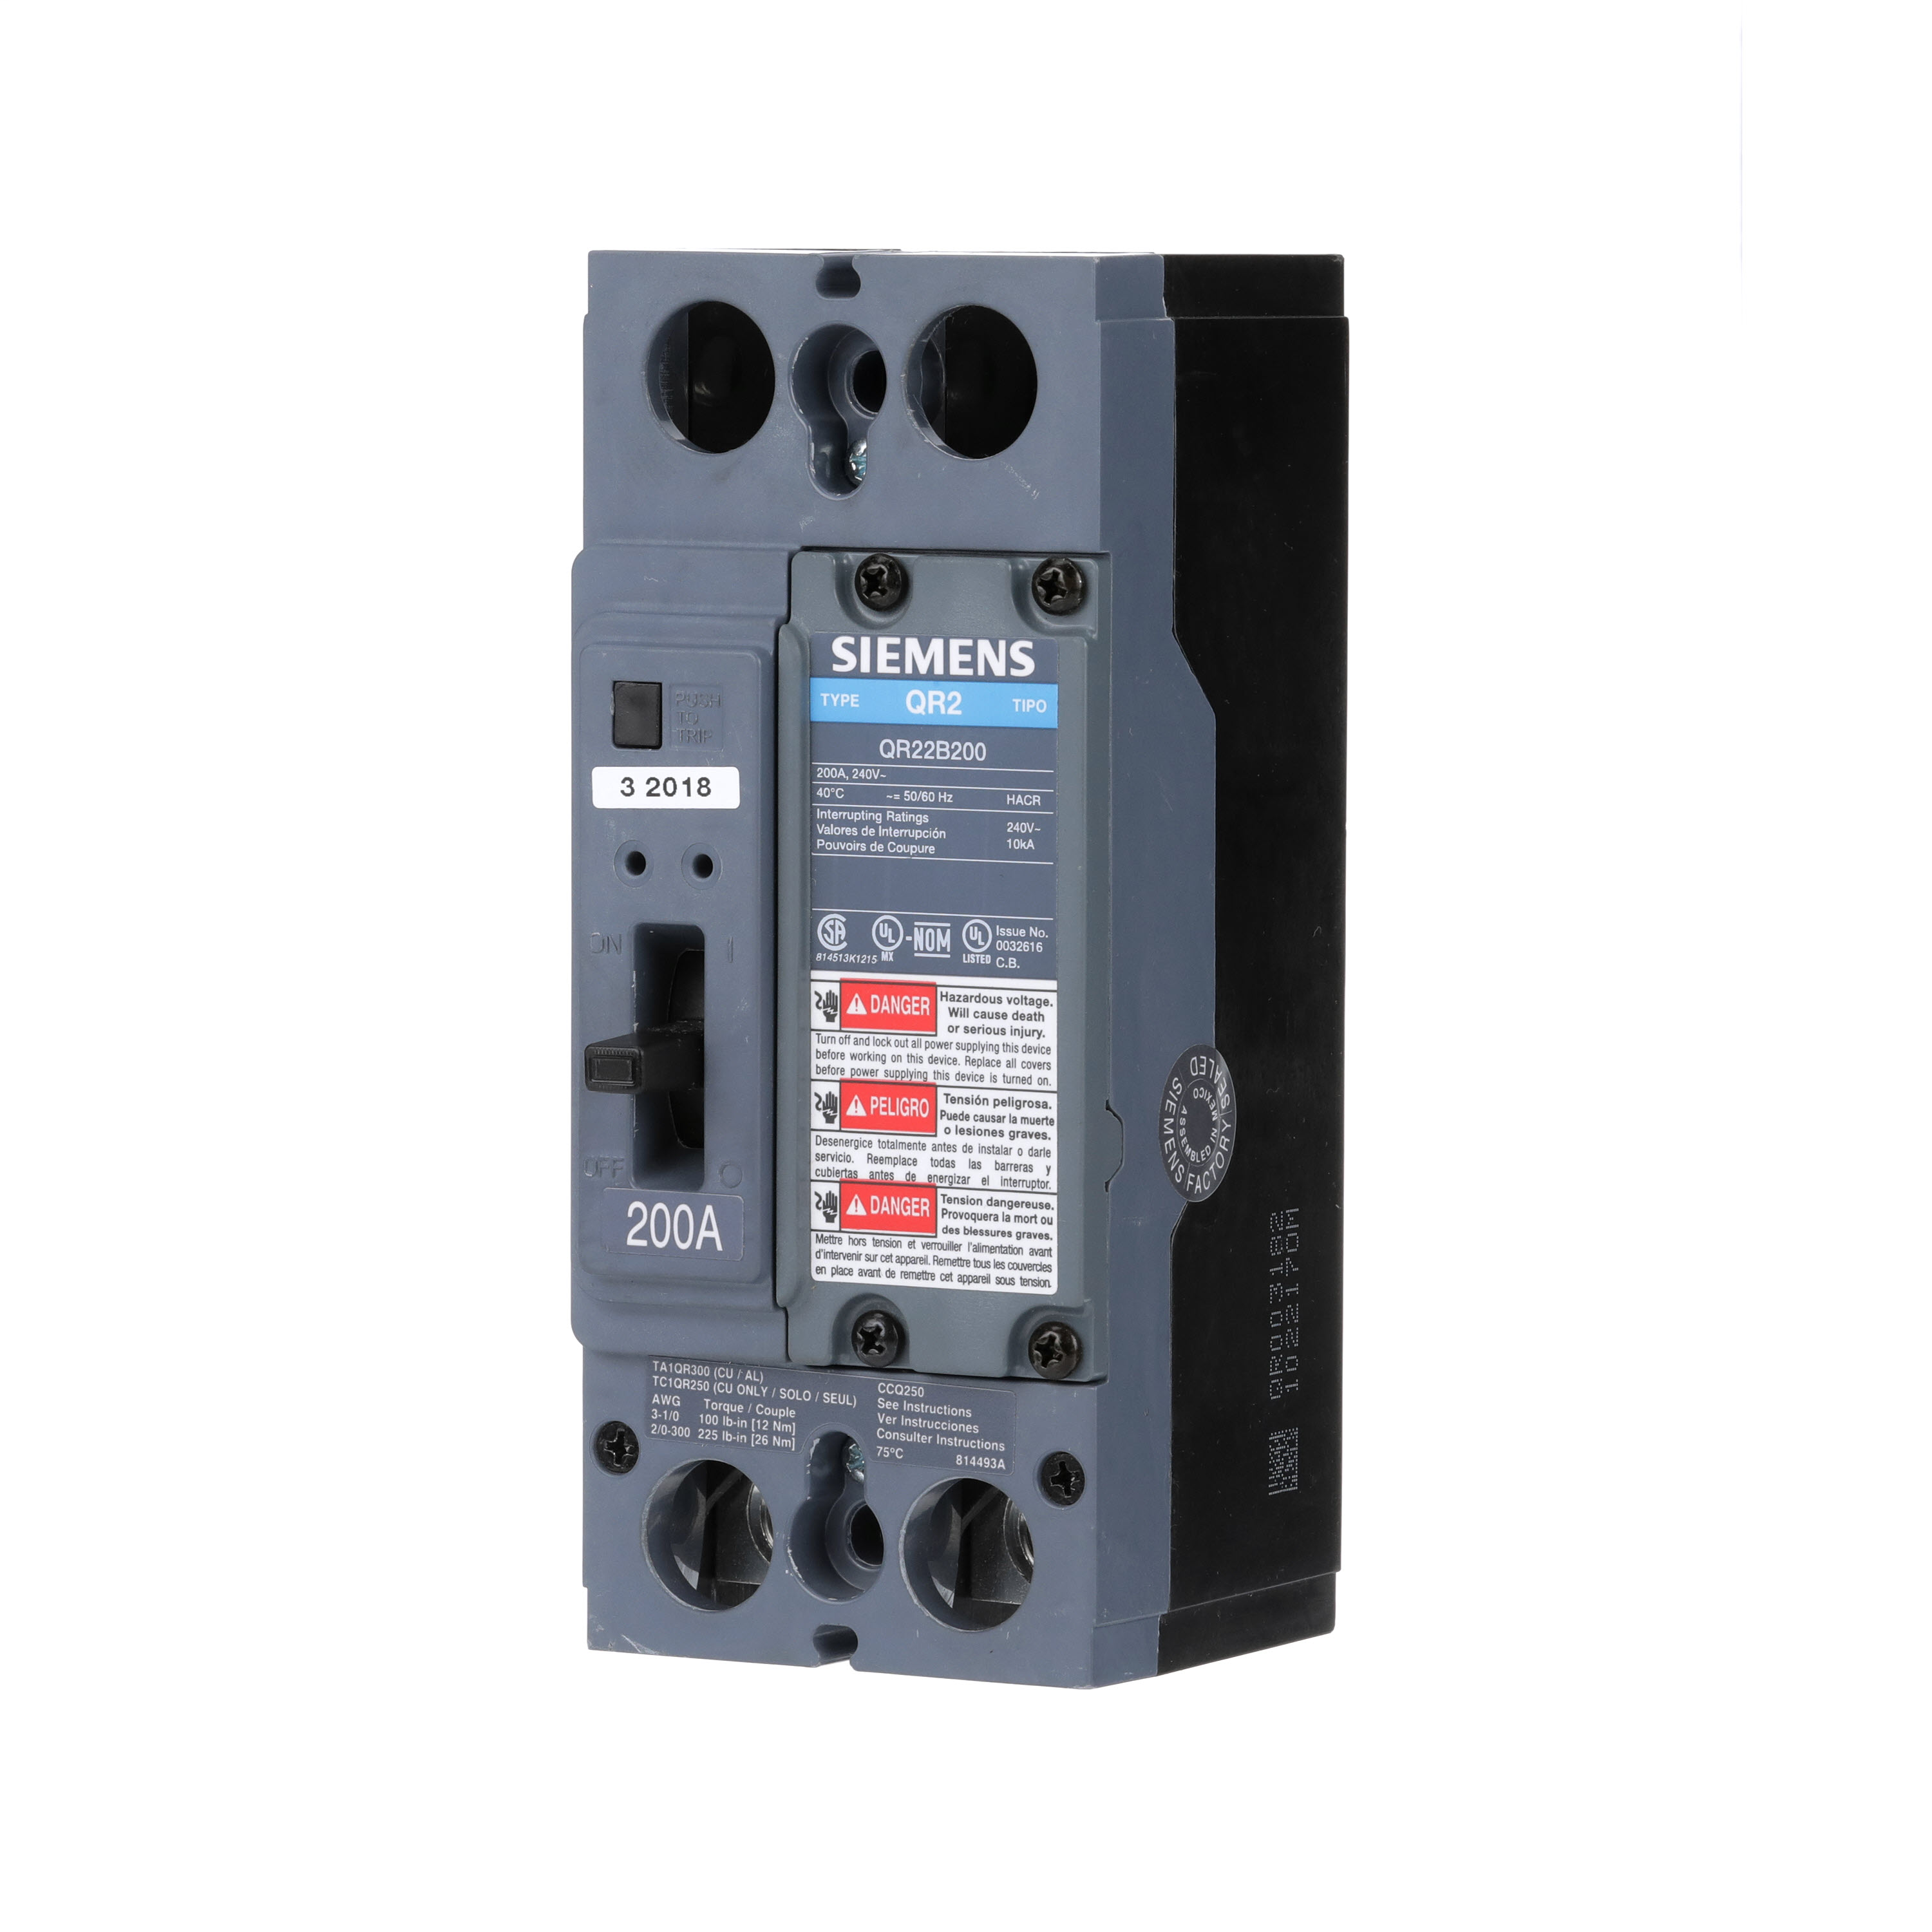 SIEMENS LOW VOLTAGE MOLDED CASE CIRCUIT BREAKER WITH THERMAL - MAGNETIC TRIP. QR FRAME STANDARD 40C BREAKER. 200A 2-POLE (10KA AT 240V). SPECIAL FEATURES NO LUGS INSTALLED.